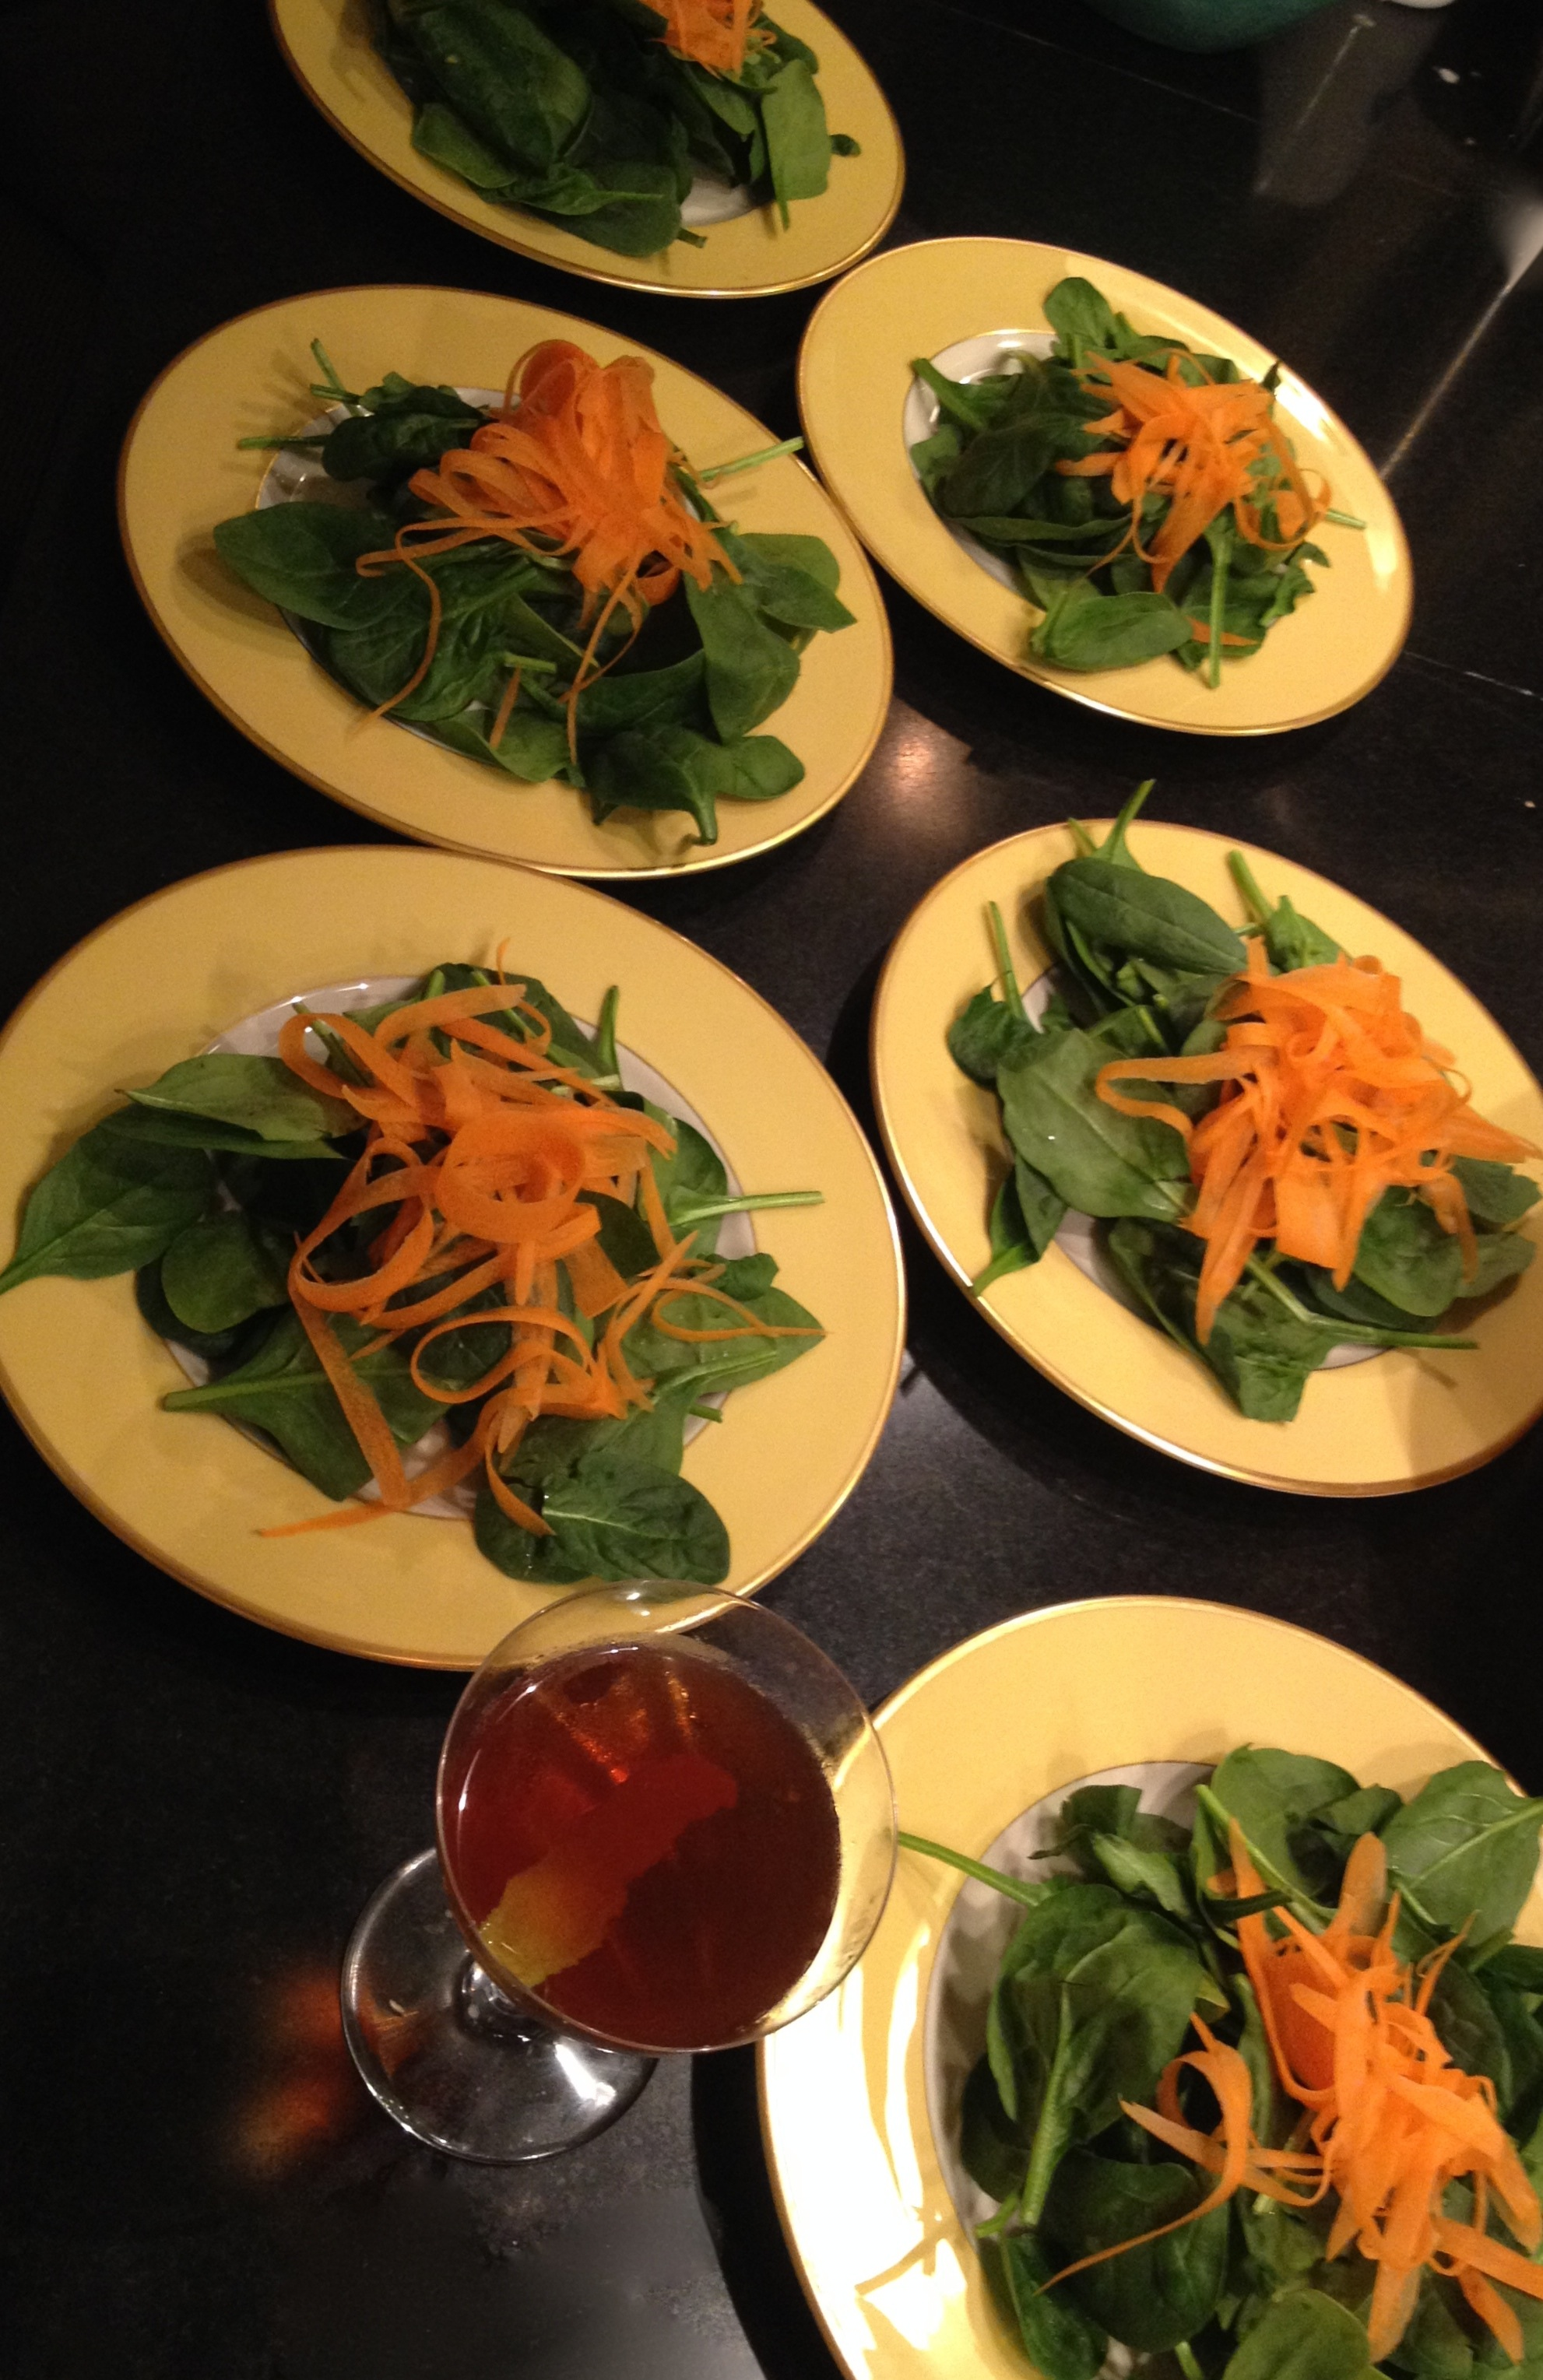 Baby spinach salad with carrots and ginger miso dressing.